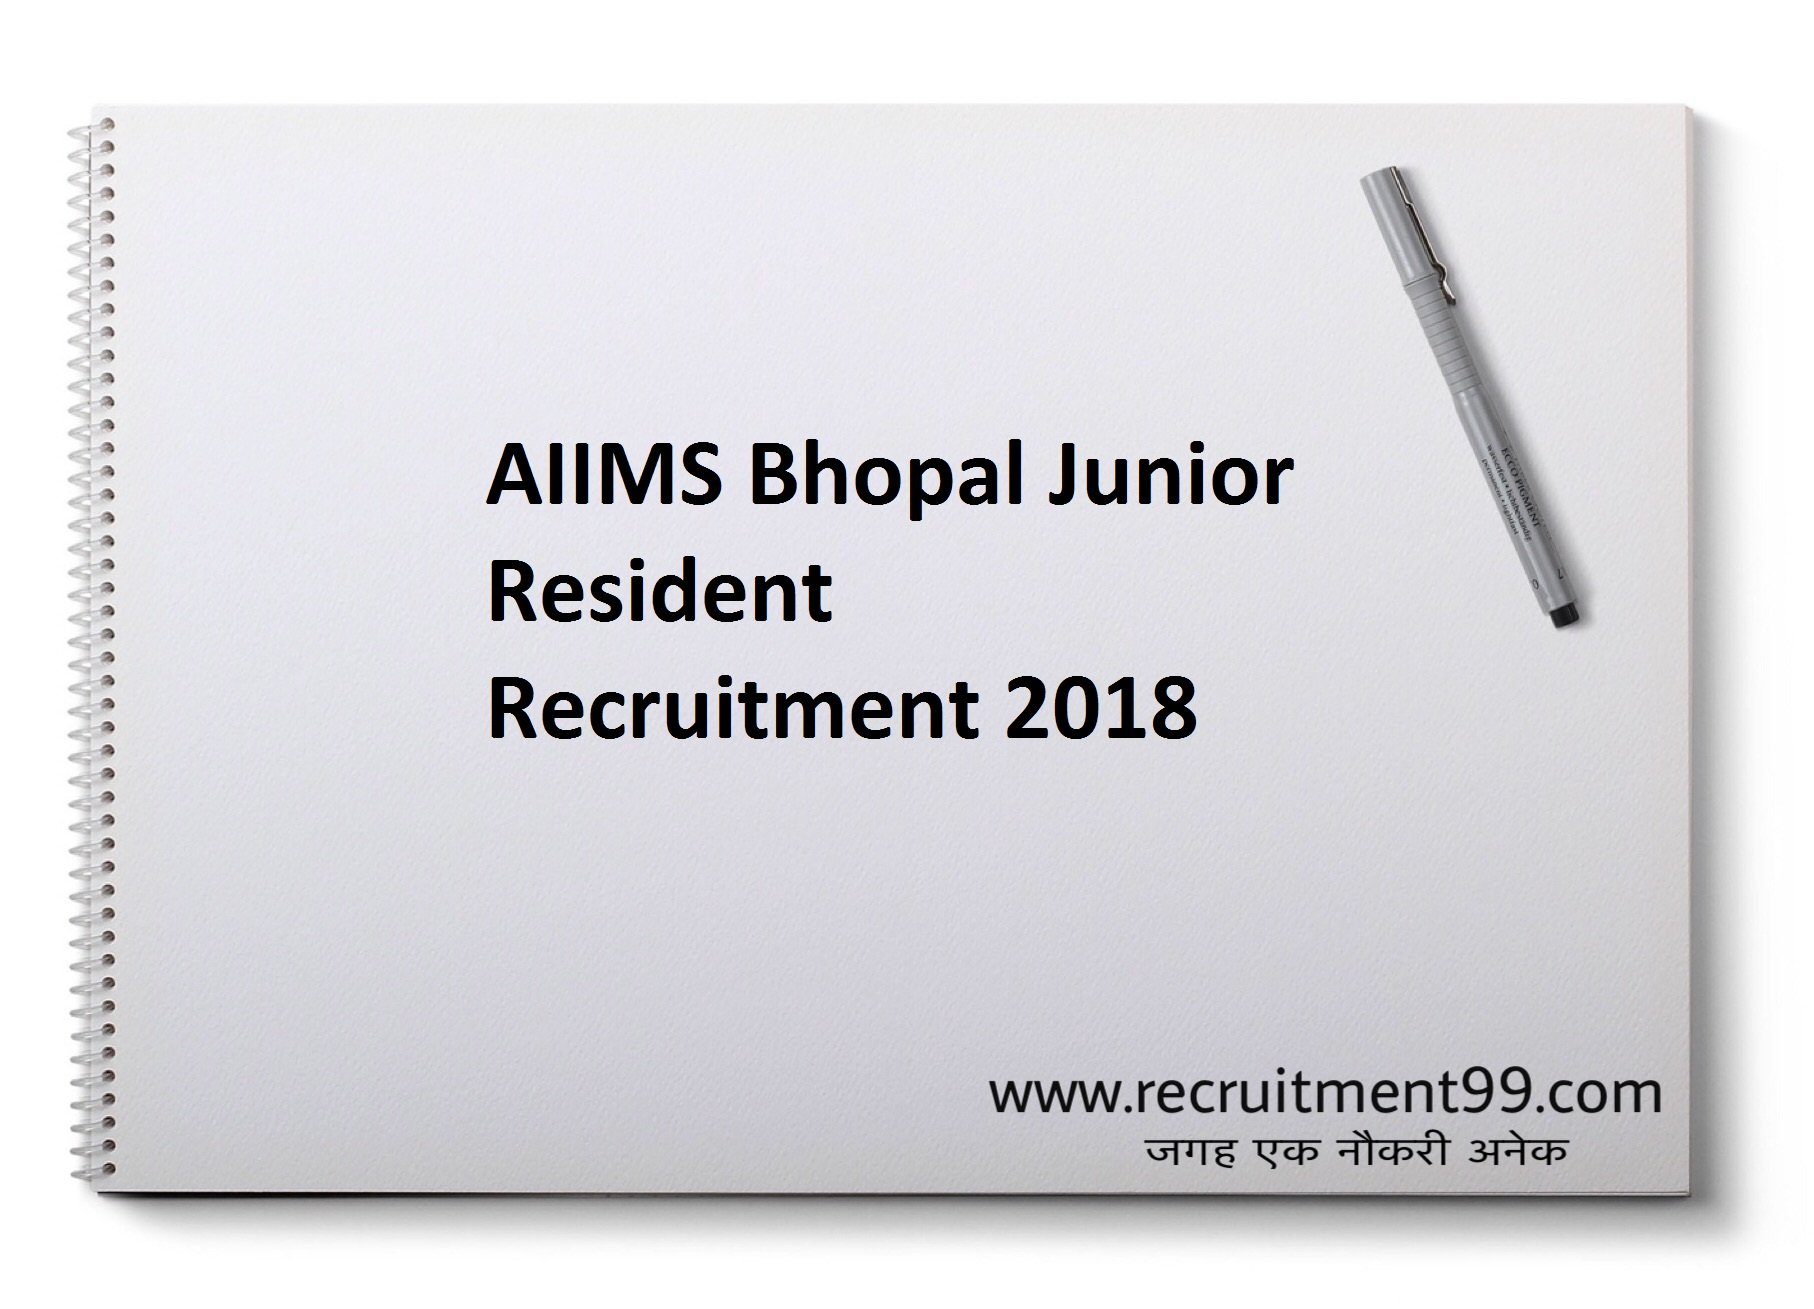 AIIMS Bhopal Junior Resident Recruitment Admit Card Result 2018